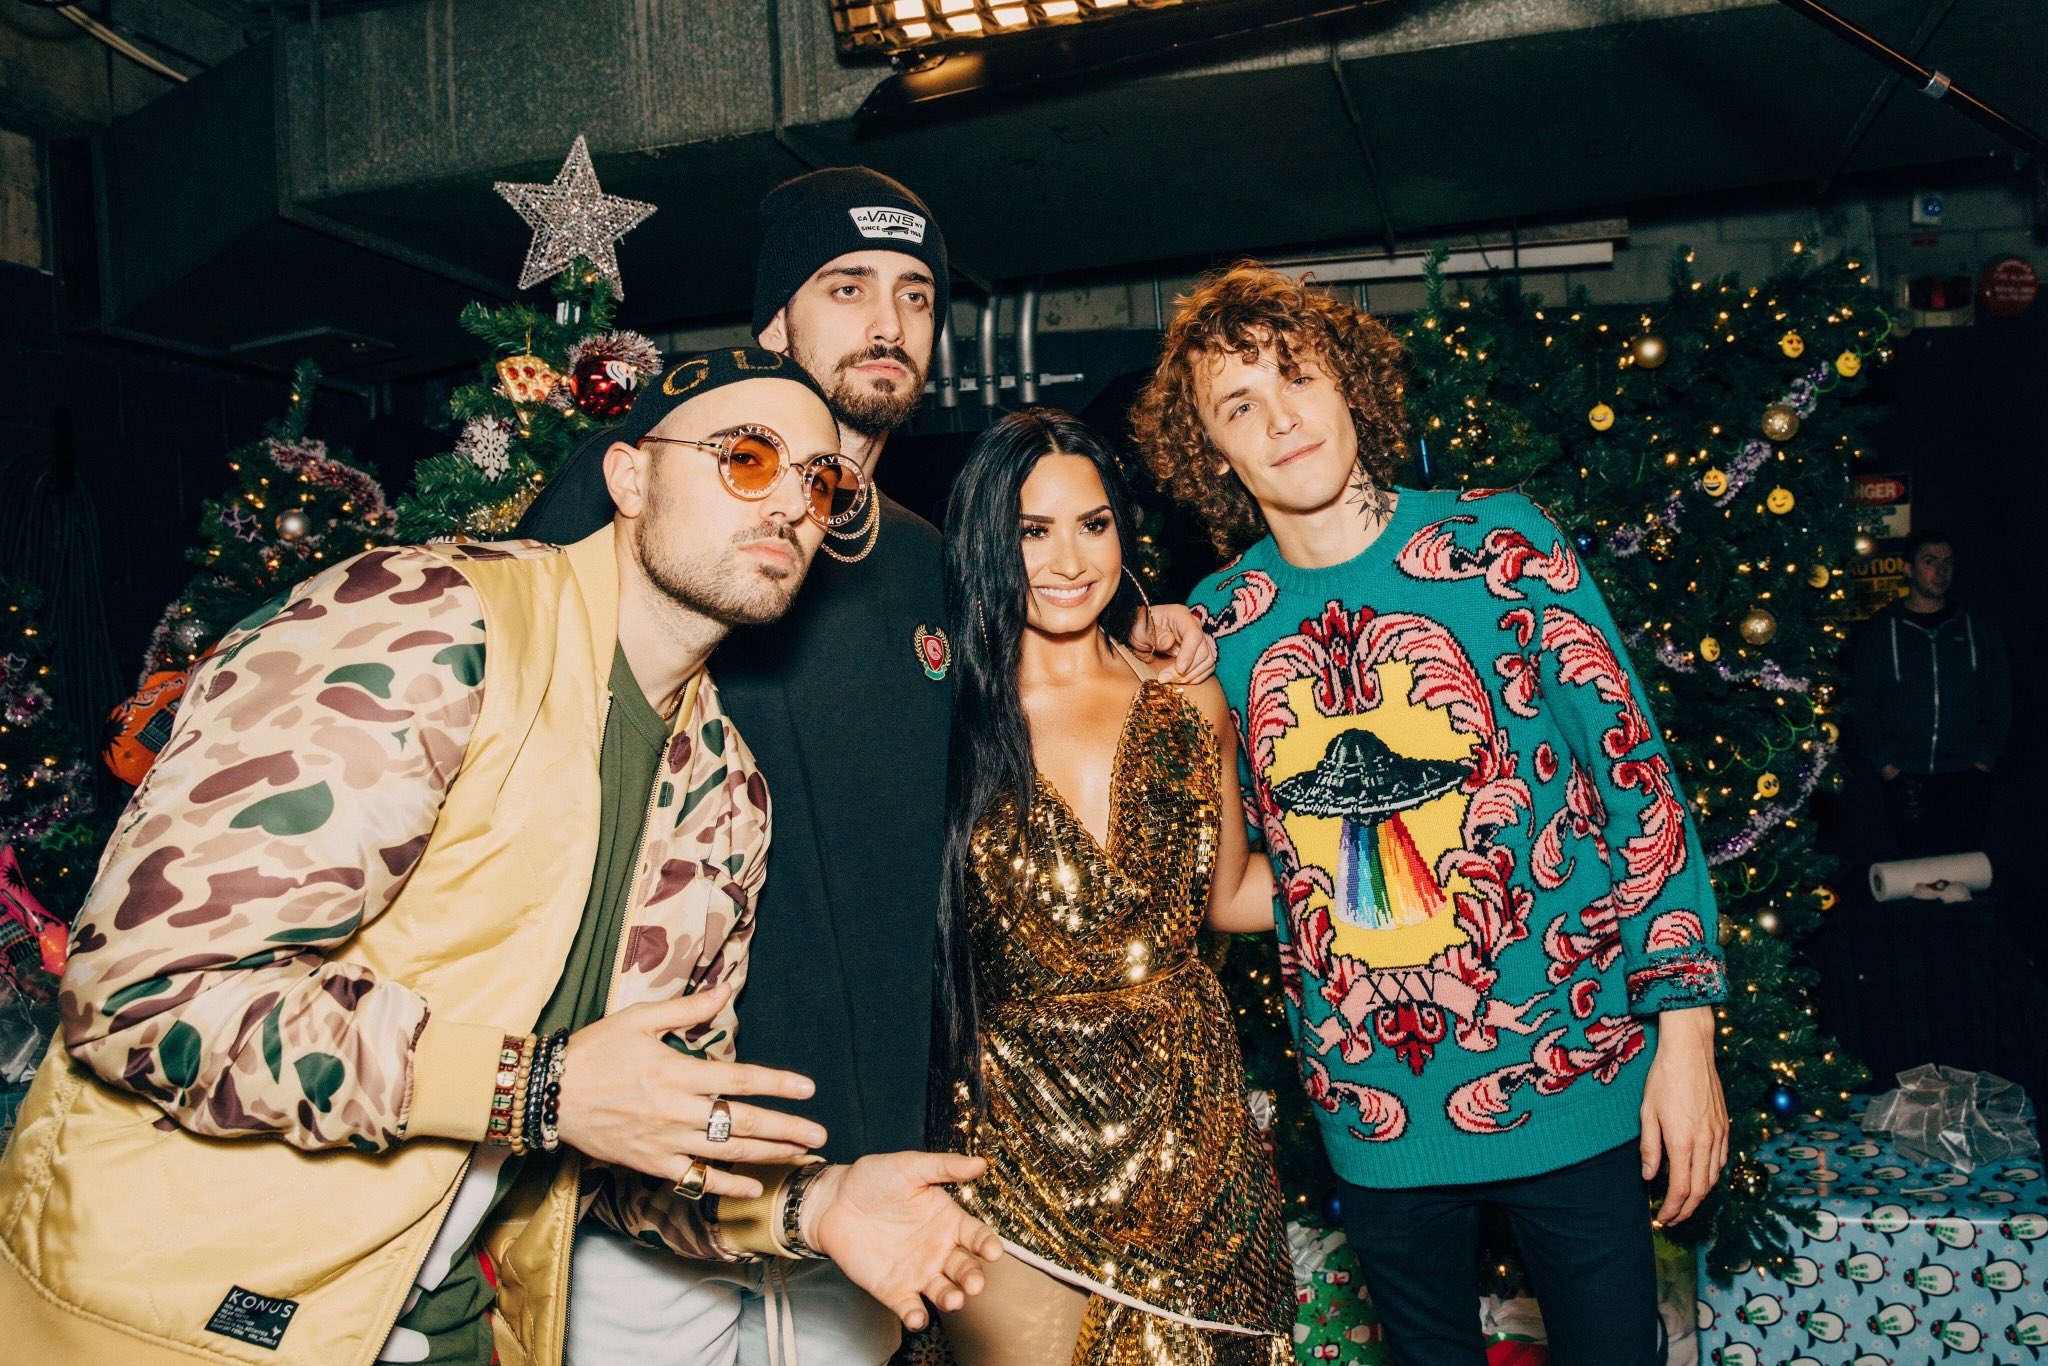 Bringing my guys @cheatcodesmusic to #JingleBallATL tonight!! See you soon Atlanta ❤️ @iheartradio @POWERATL https://t.co/E0mMmWGcNs